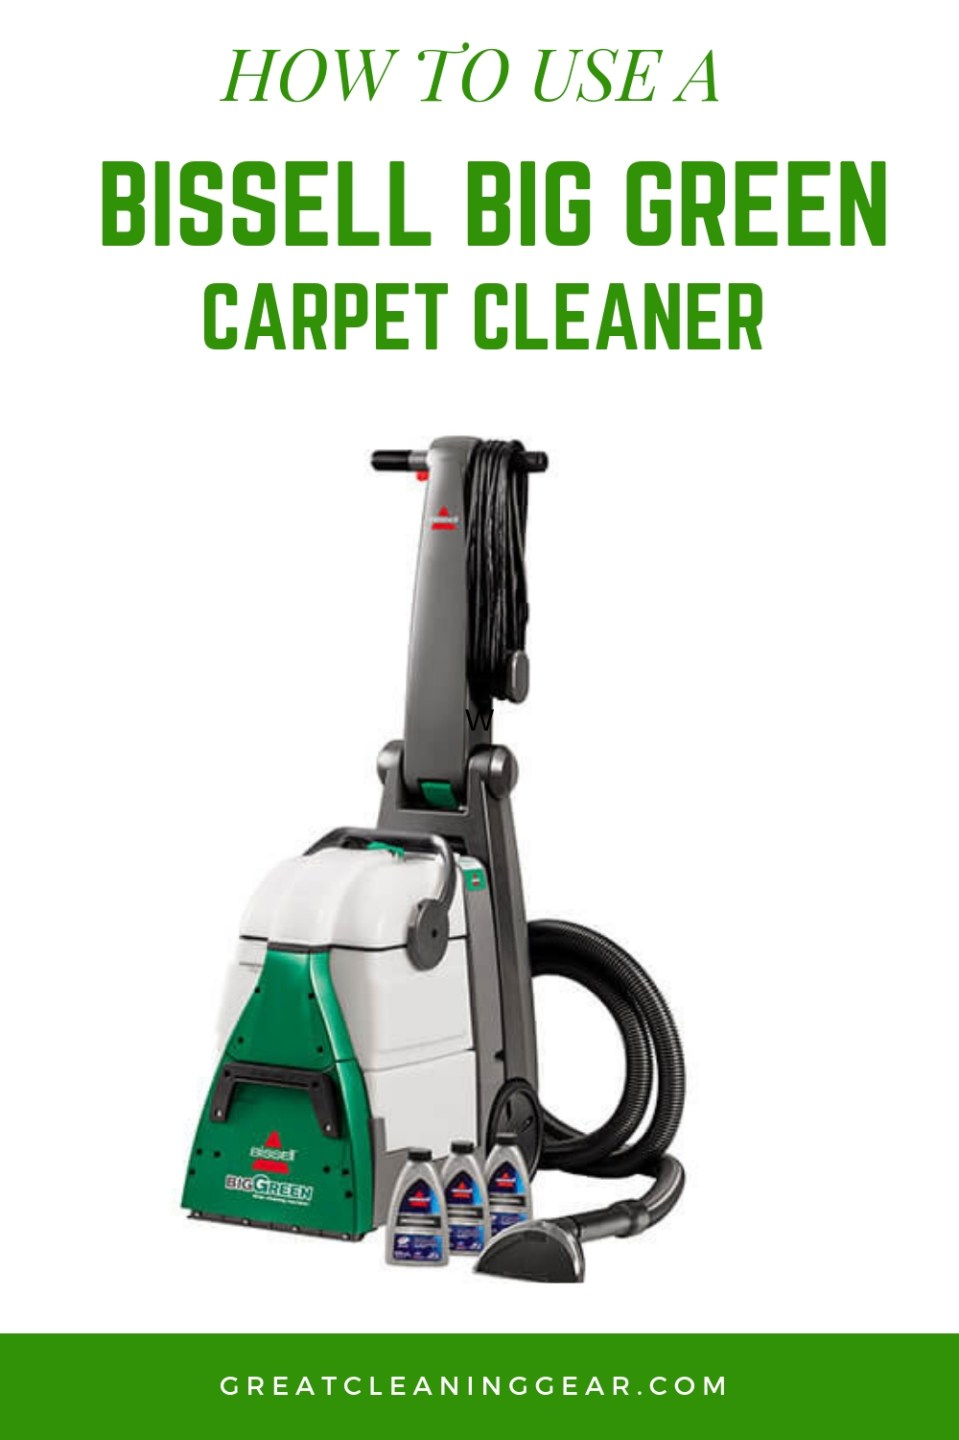 How To Use Bissell Big Green Carpet Cleaner